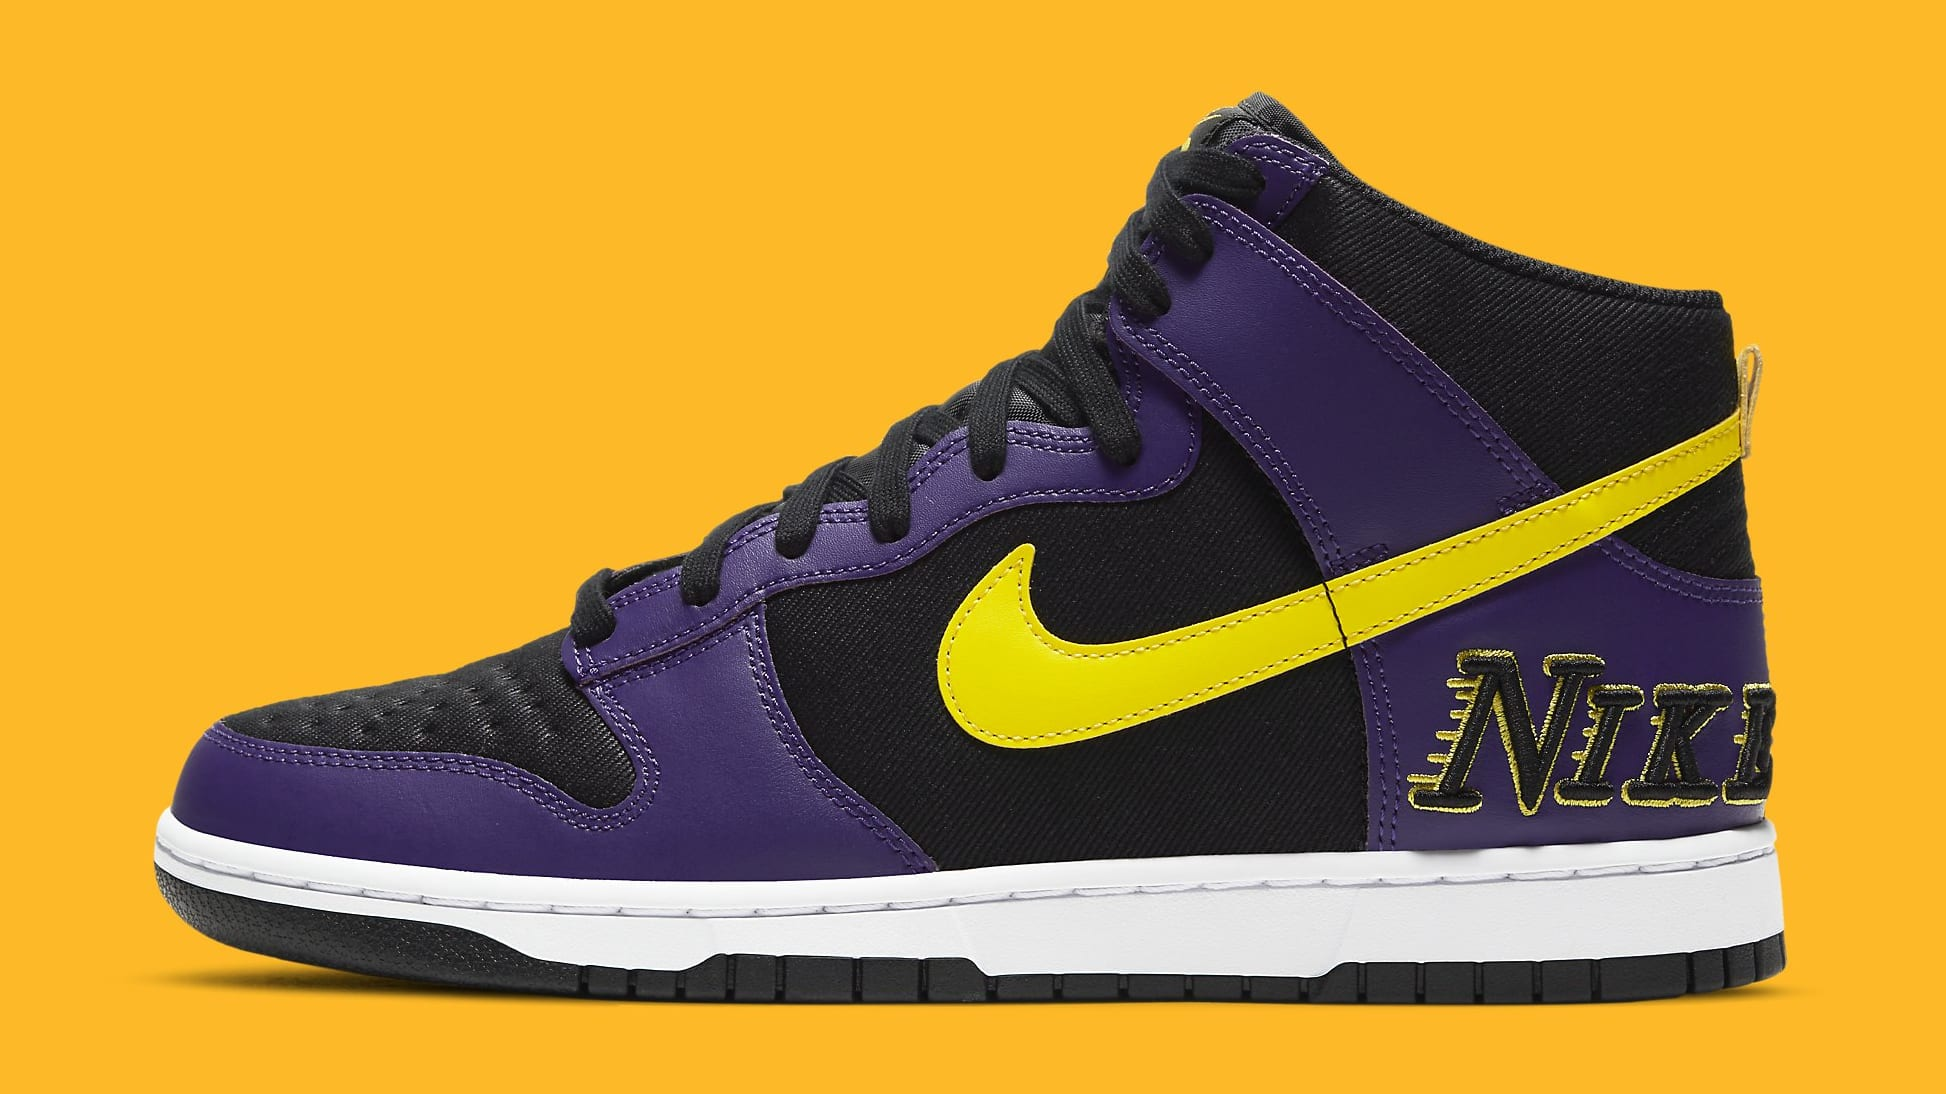 Nike Dunk High PRM EMB 'Lakers' DH0642-001 Lateral